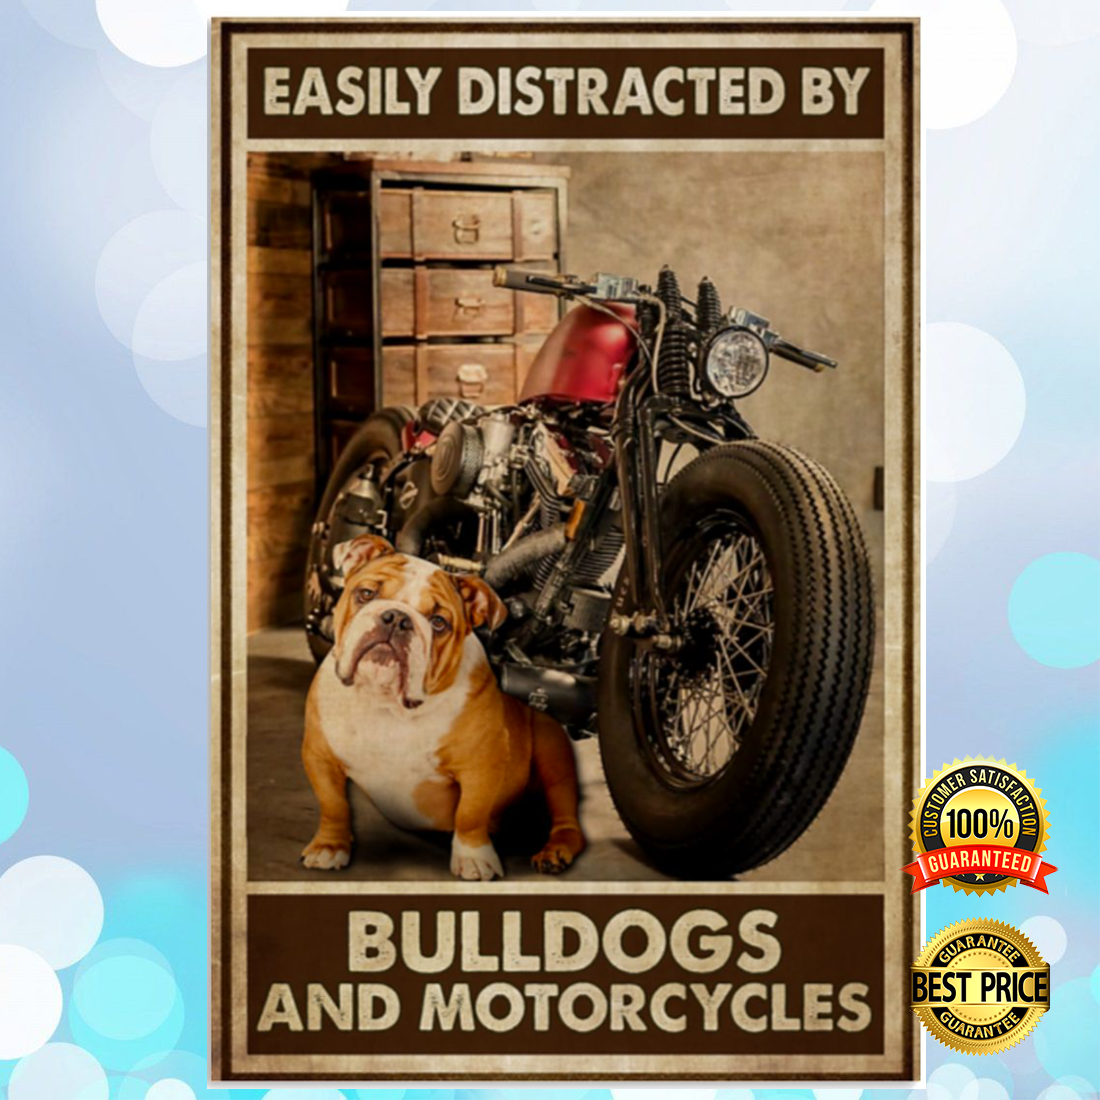 Easily distracted by bulldogs and motorcycles poster 5